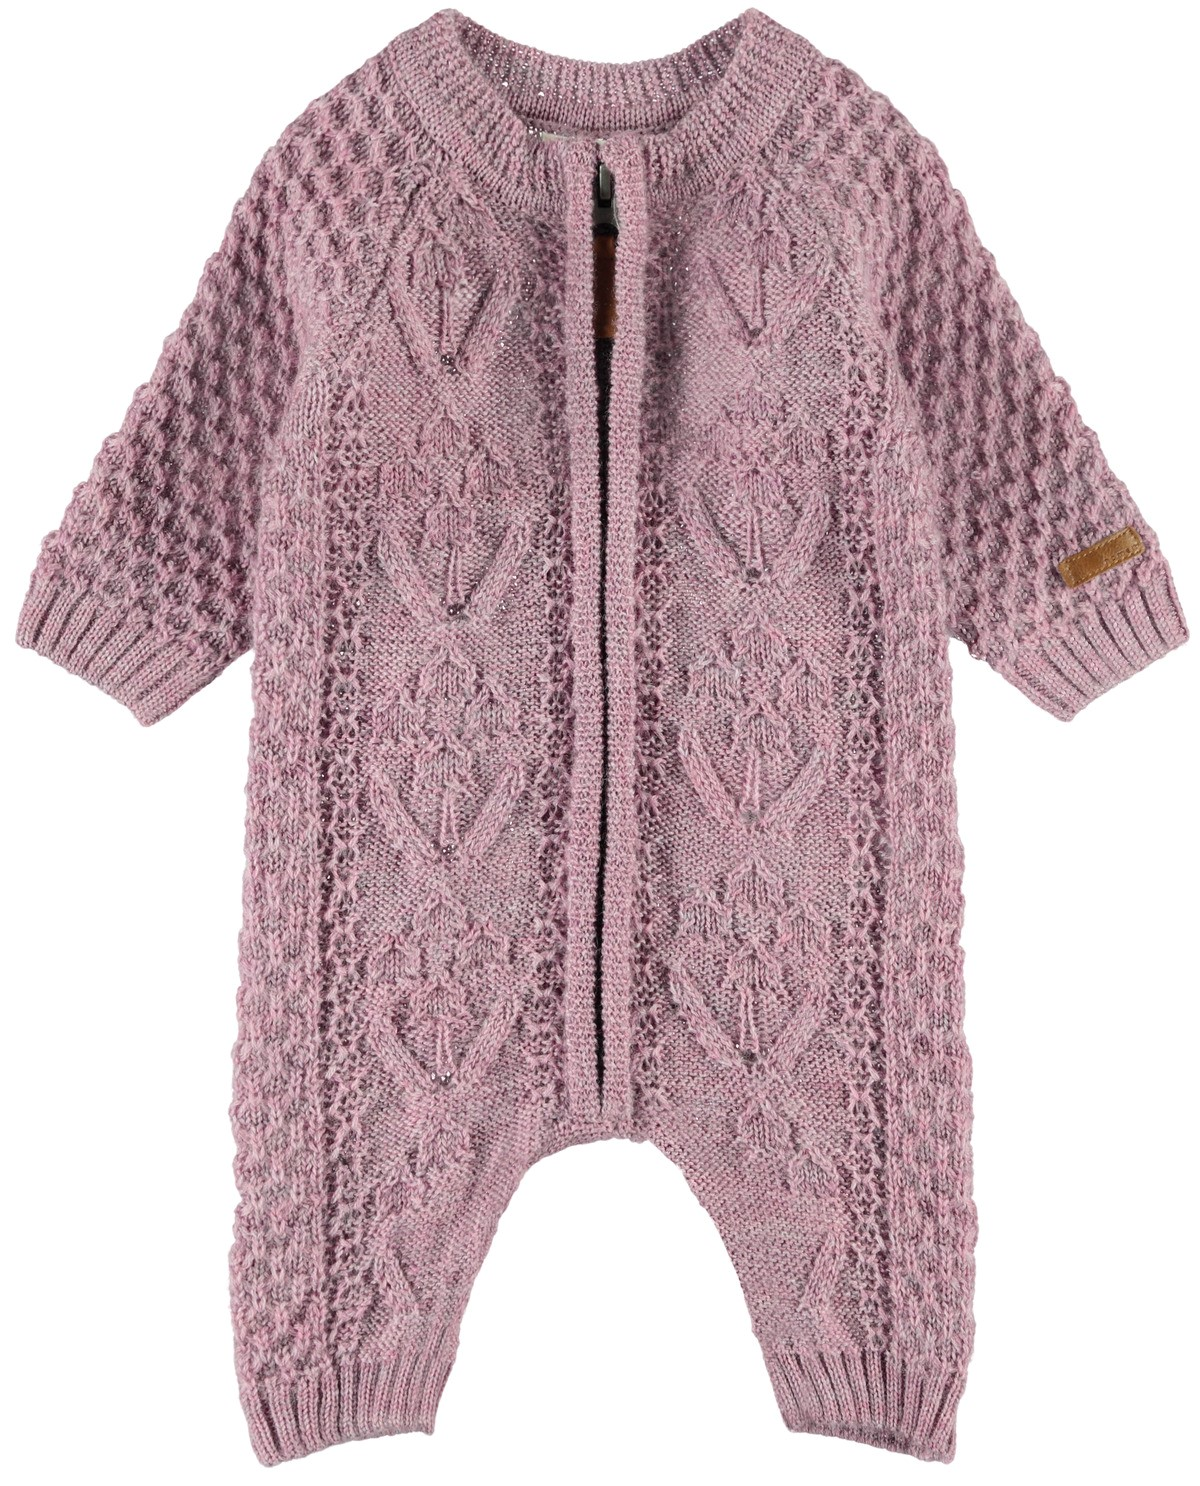 Wrilla Wool LS Knit Suit baby